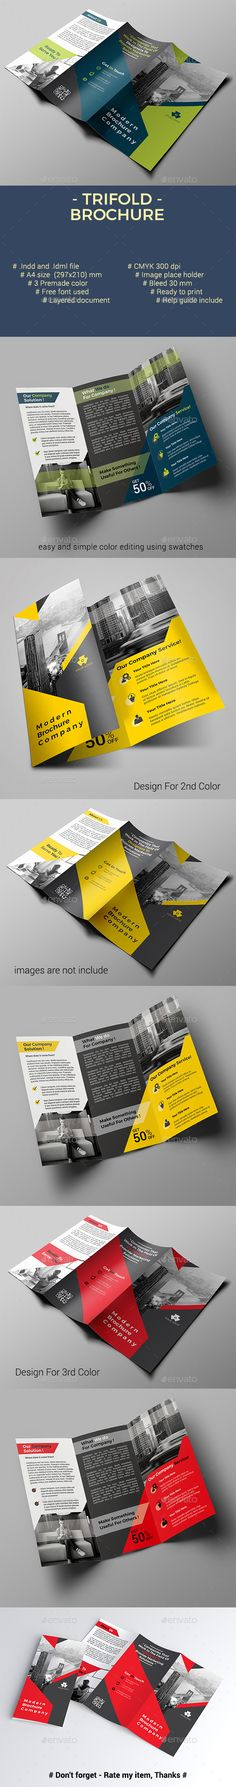 #Trifold Brochure - Corporate #Brochures Download here: https://graphicriver.net/item/trifold-brochure/20185139?ref=alena994